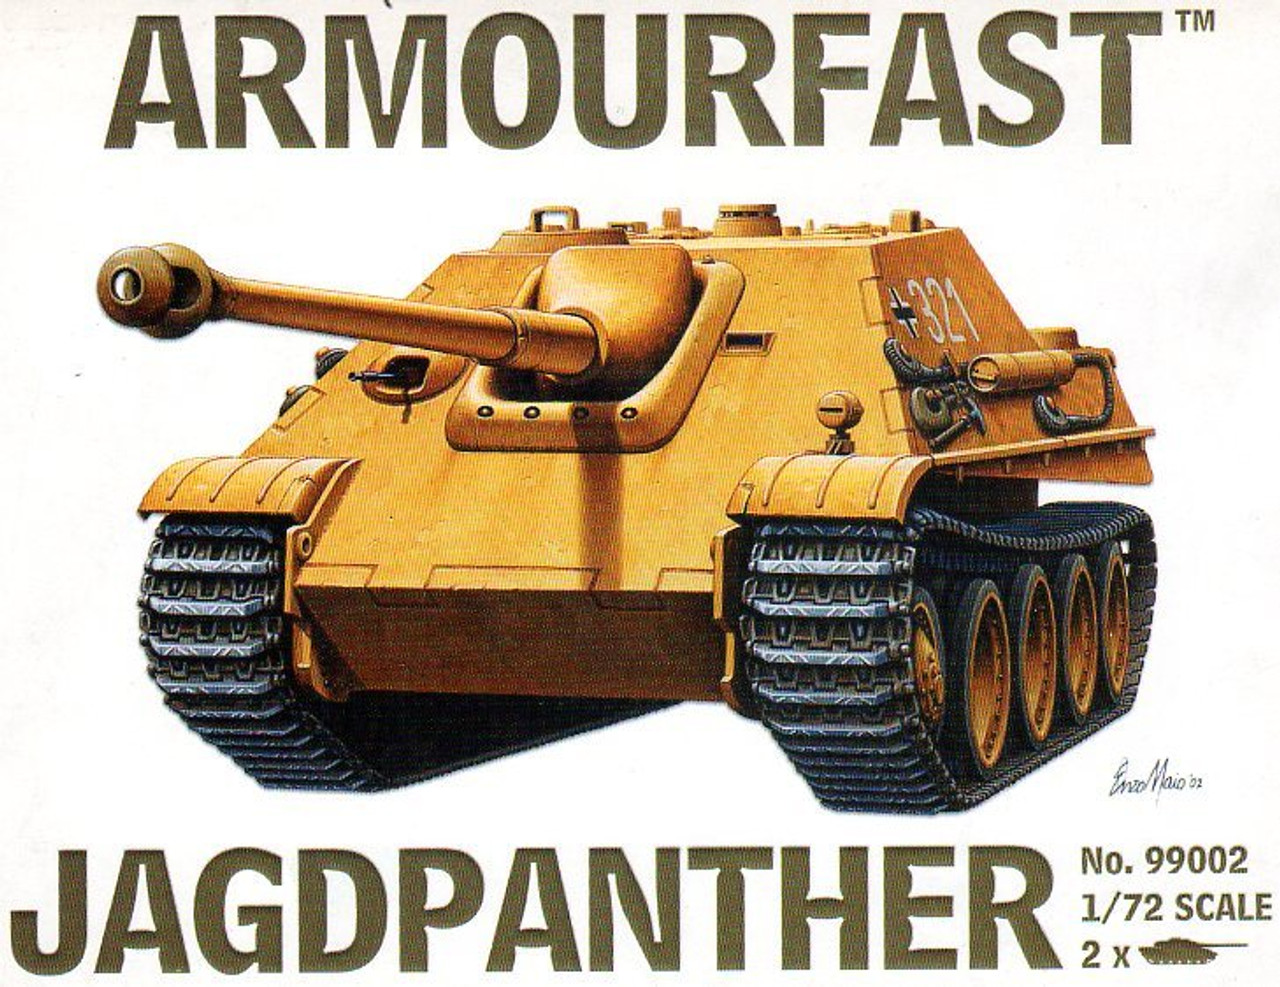 ourFast 99002 Jagdpanther Military Vehicles 1:72 Scale (AF99002)